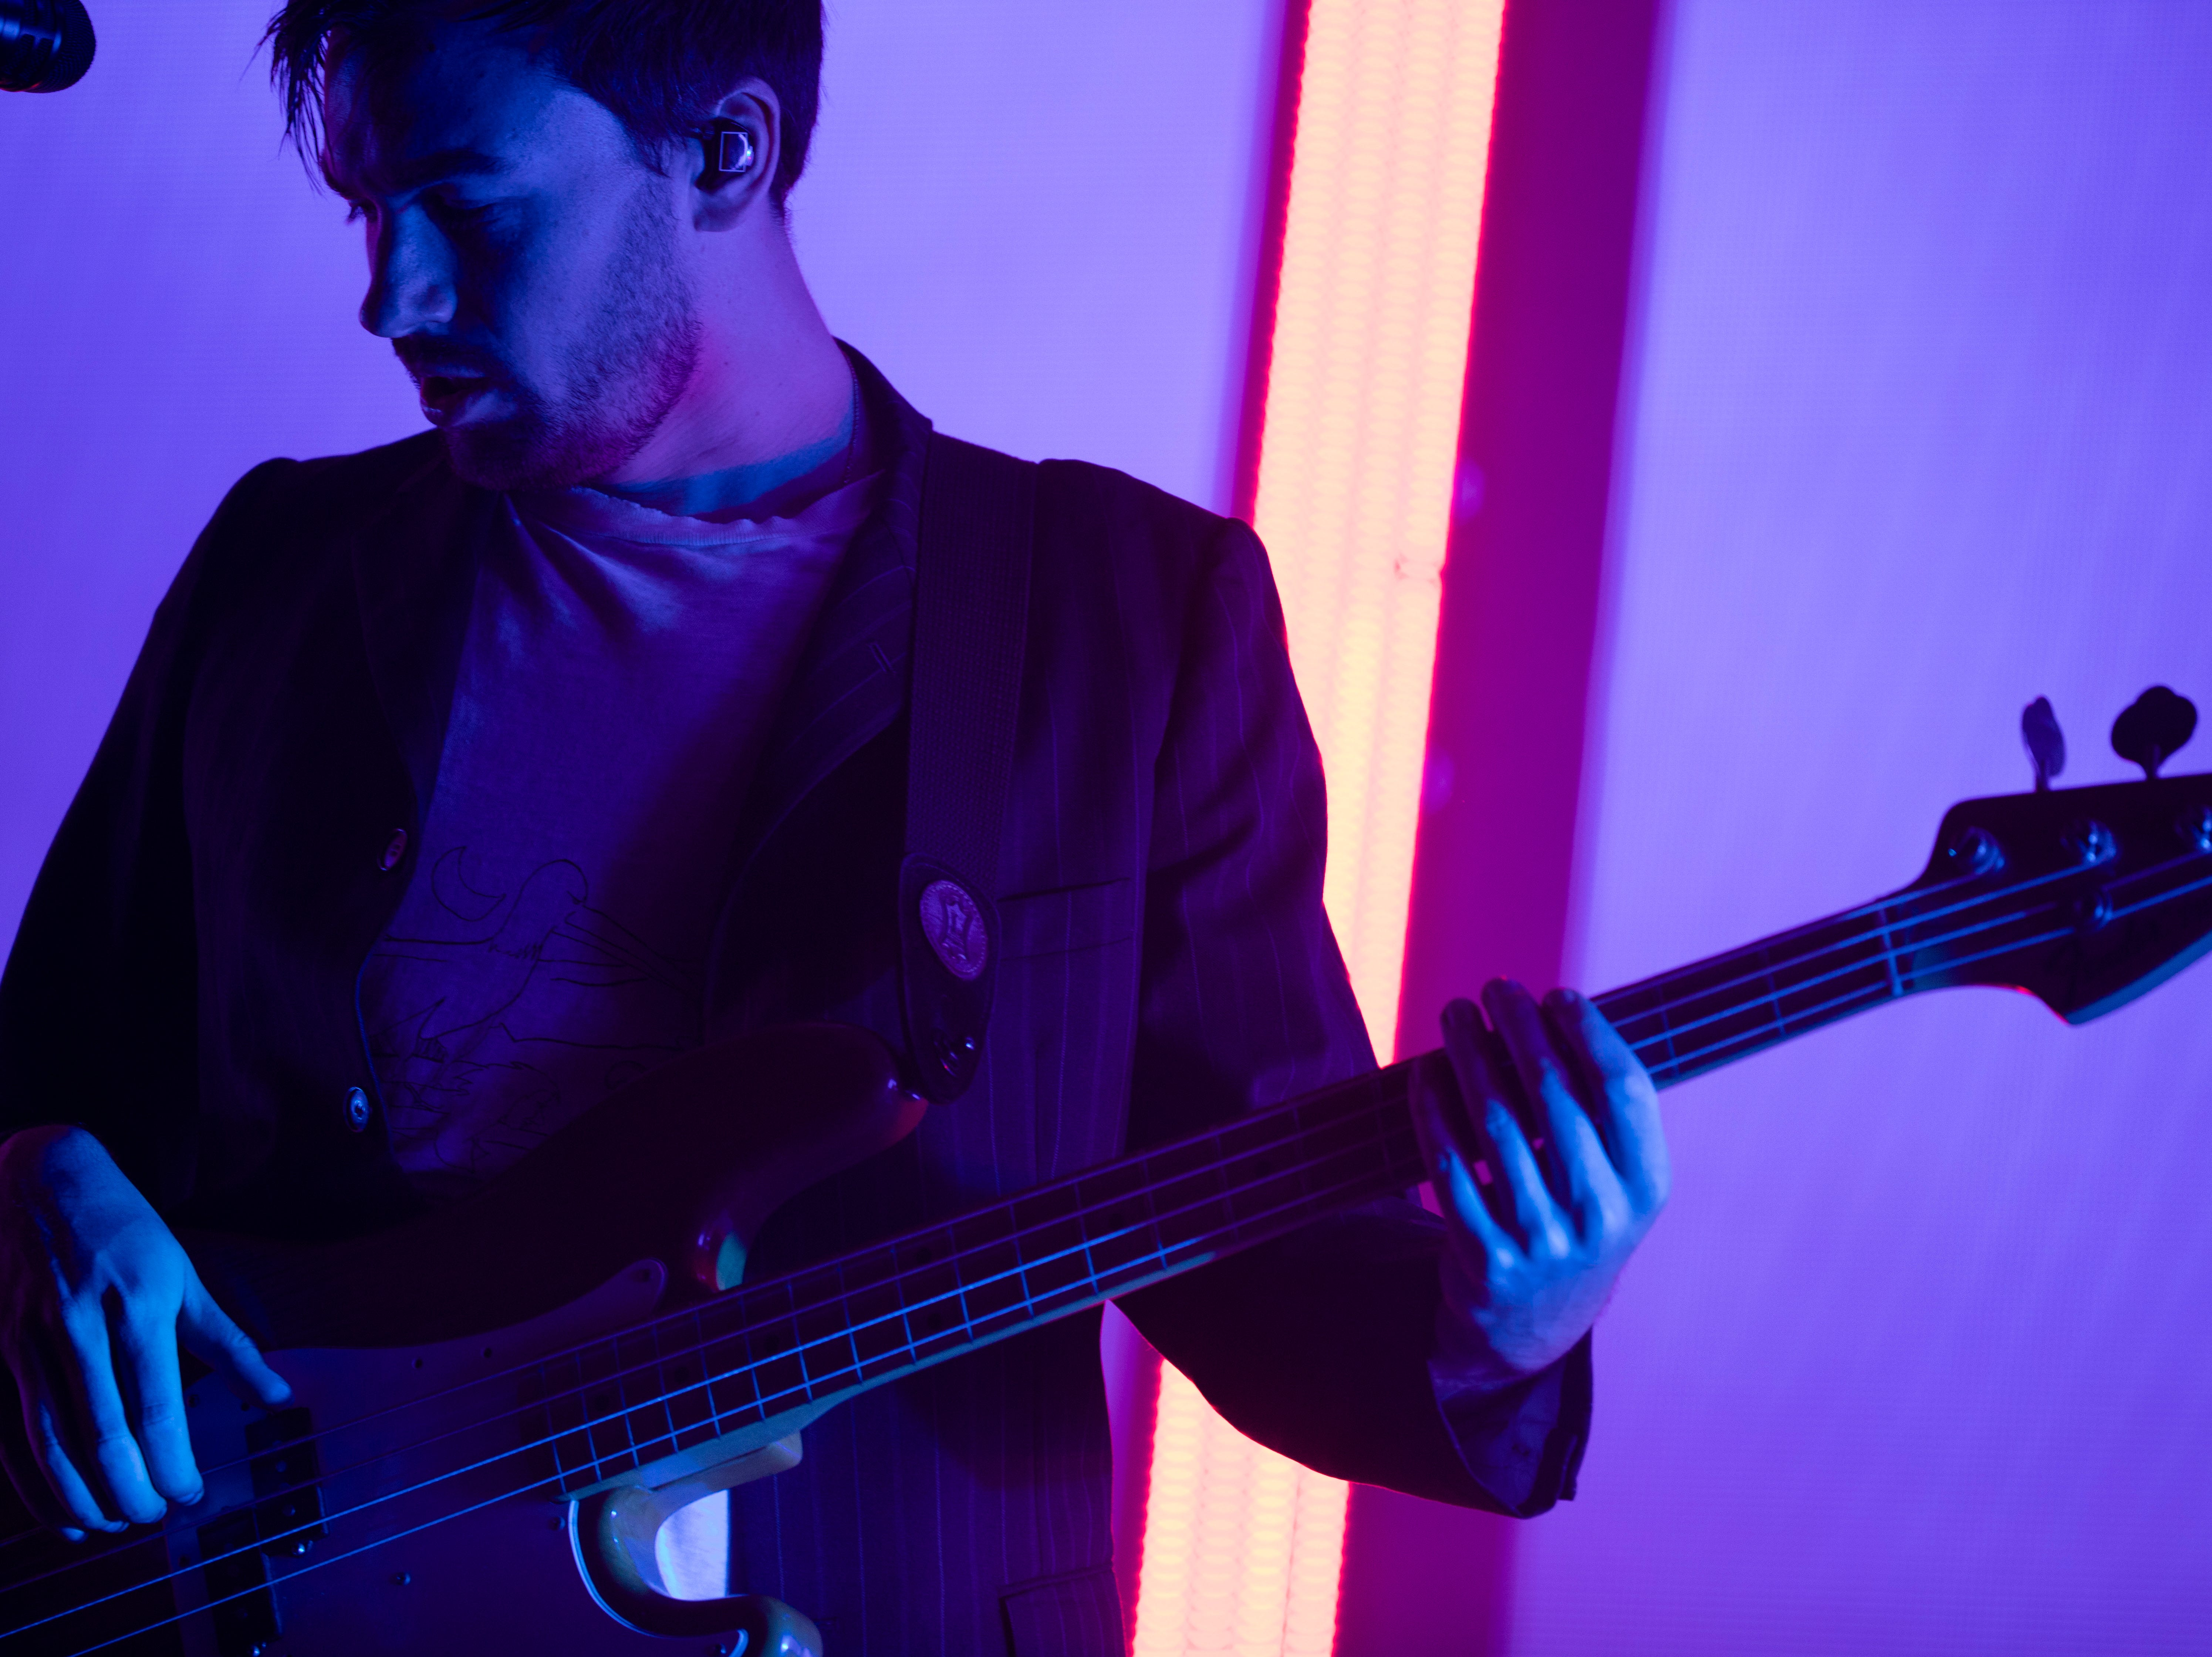 Ross MacDonald, The 1975 bassist, performs during The 1975 concert at the PNC Pavilion on Sunday, May 12, 2019 in Cincinnati.